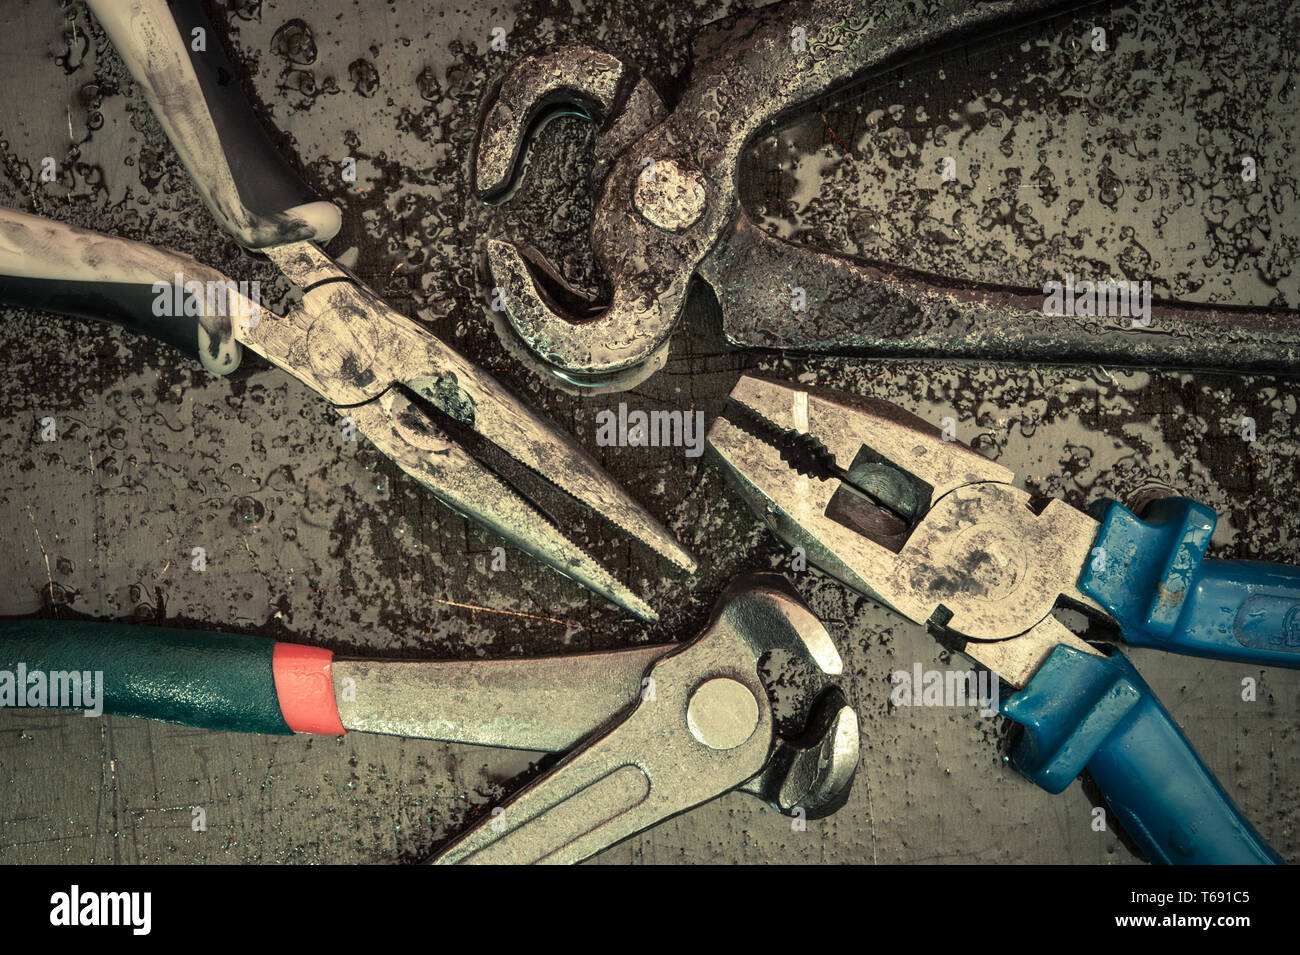 Various tools and instruments. Pincers, puller, pliers. - Stock Image